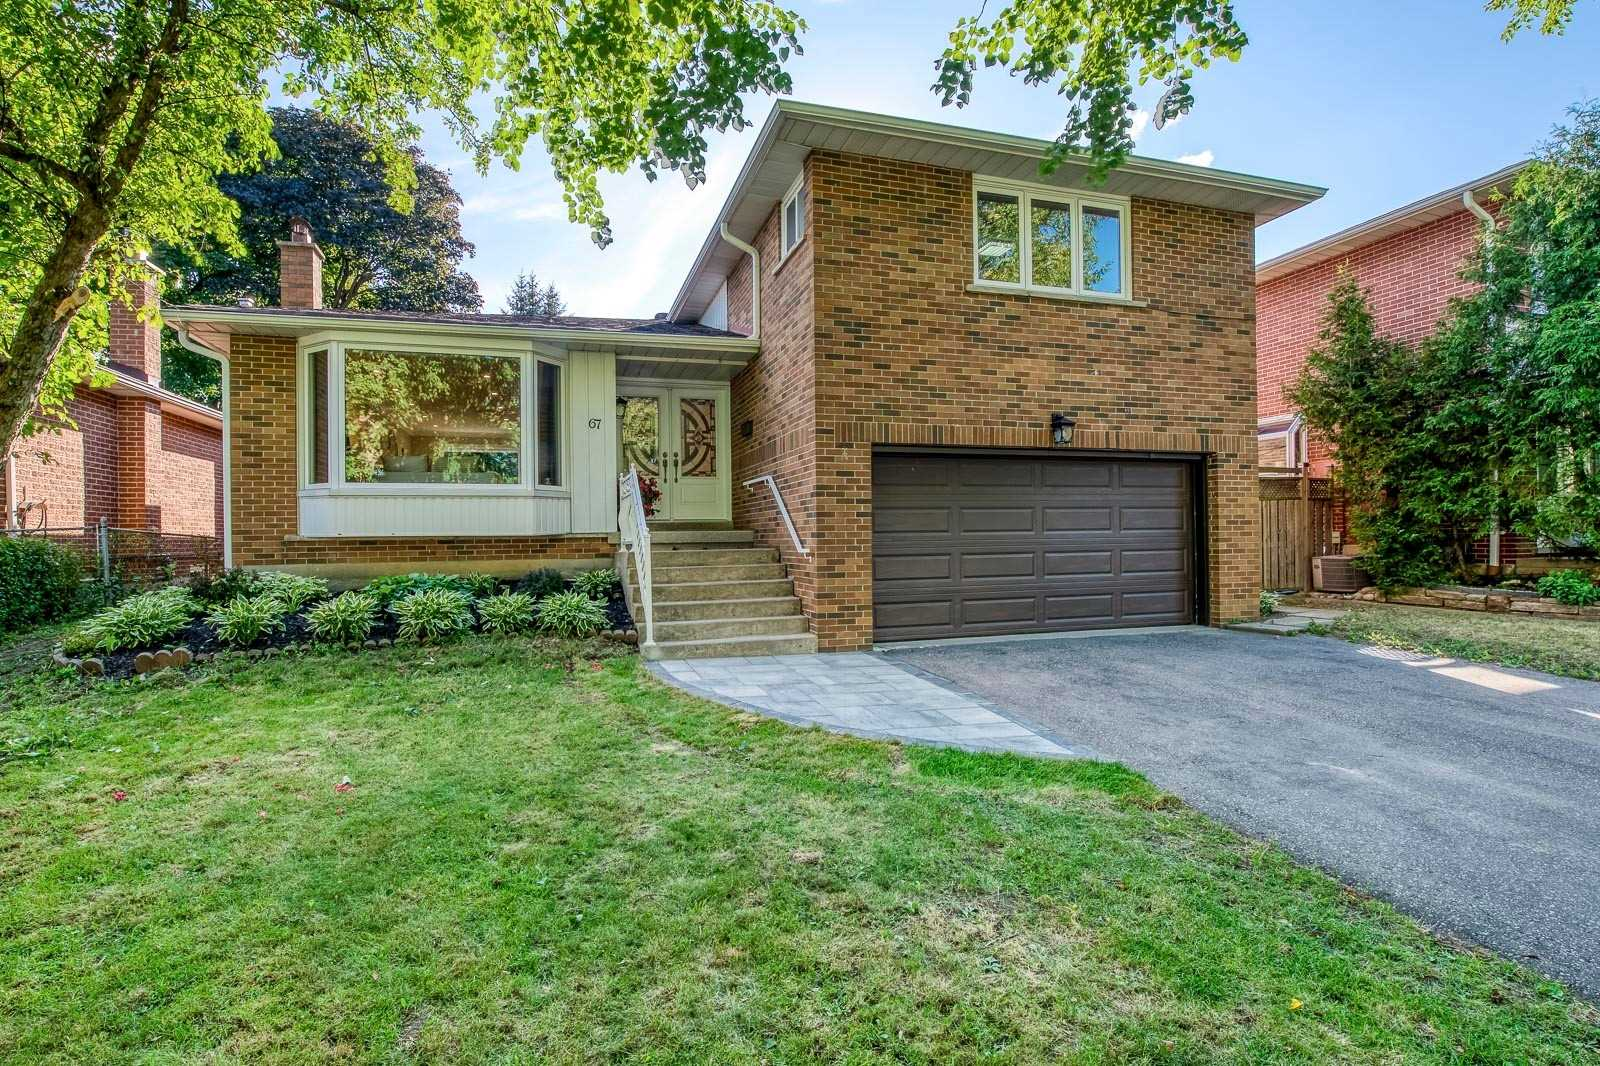 67 Tidefall Dr, Toronto, Ontario M1W1J1, 3 Bedrooms Bedrooms, 9 Rooms Rooms,3 BathroomsBathrooms,Detached,For Sale,Tidefall,E4861563